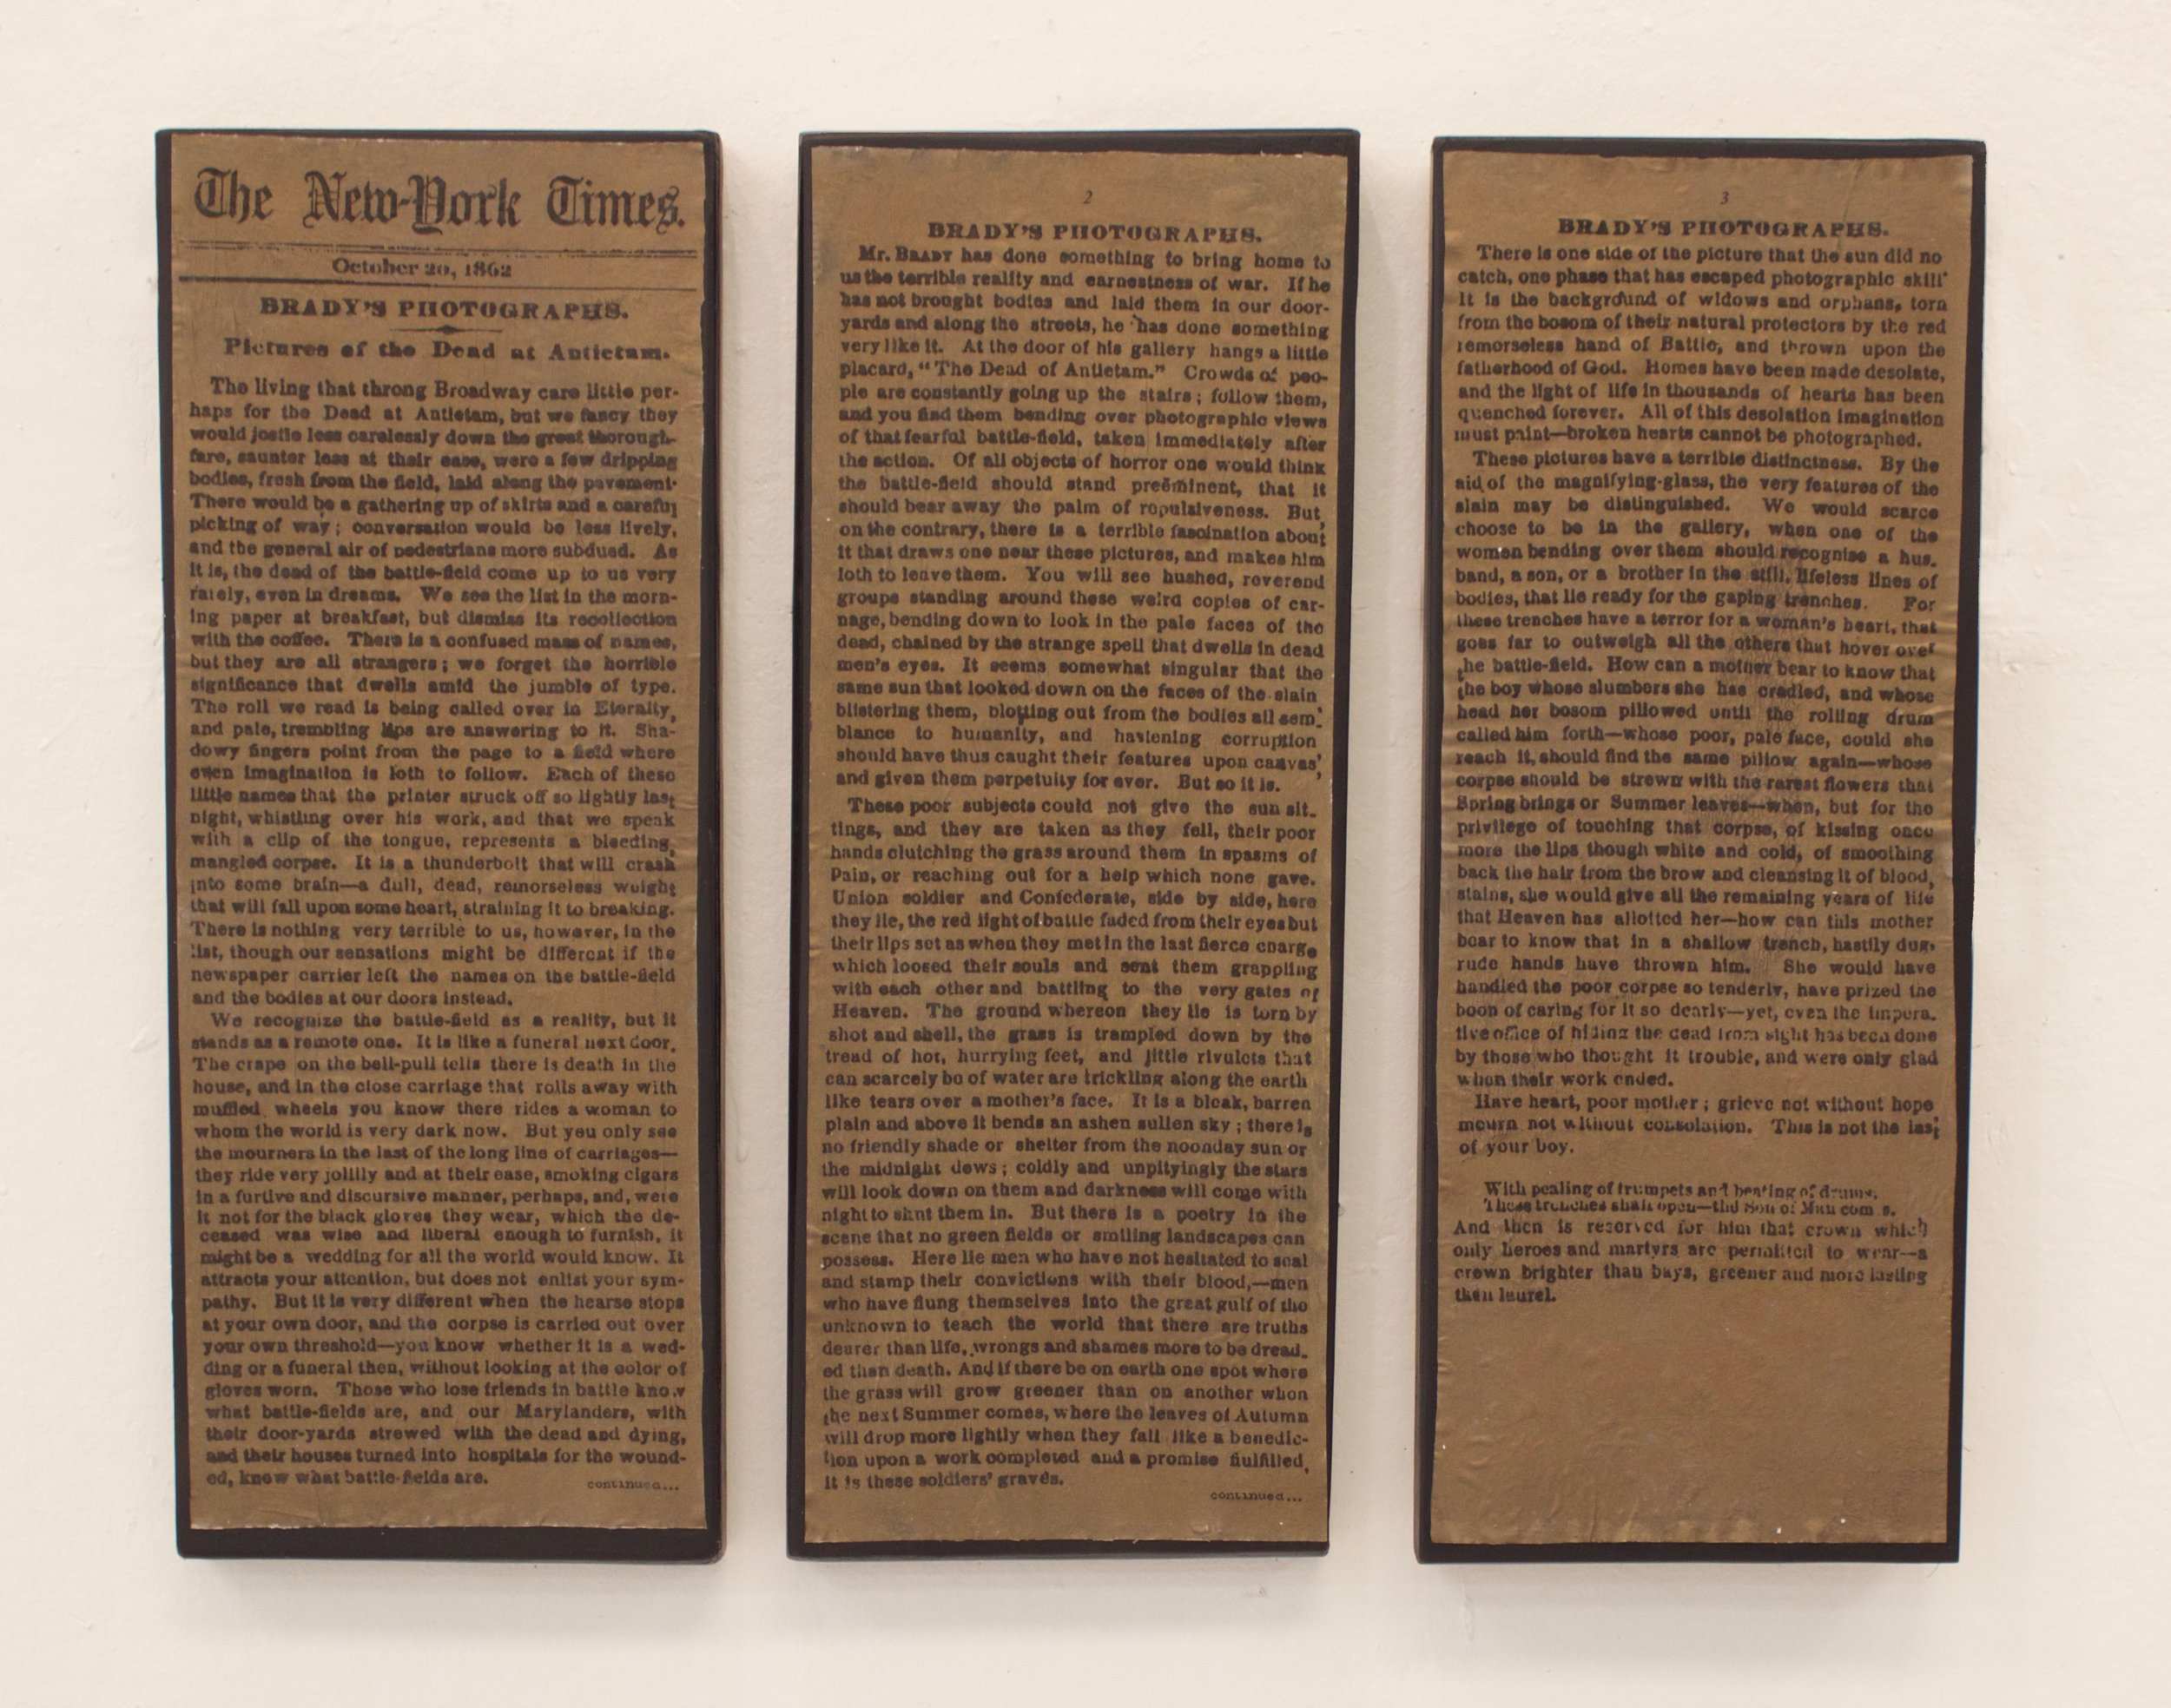 """""""The New York Times, October 20, 1862: Pictures of the Dead at Antietam,"""" 2017, Ink Transfer and Spray Paint on Panel, 9.25""""x 24"""" (each)"""